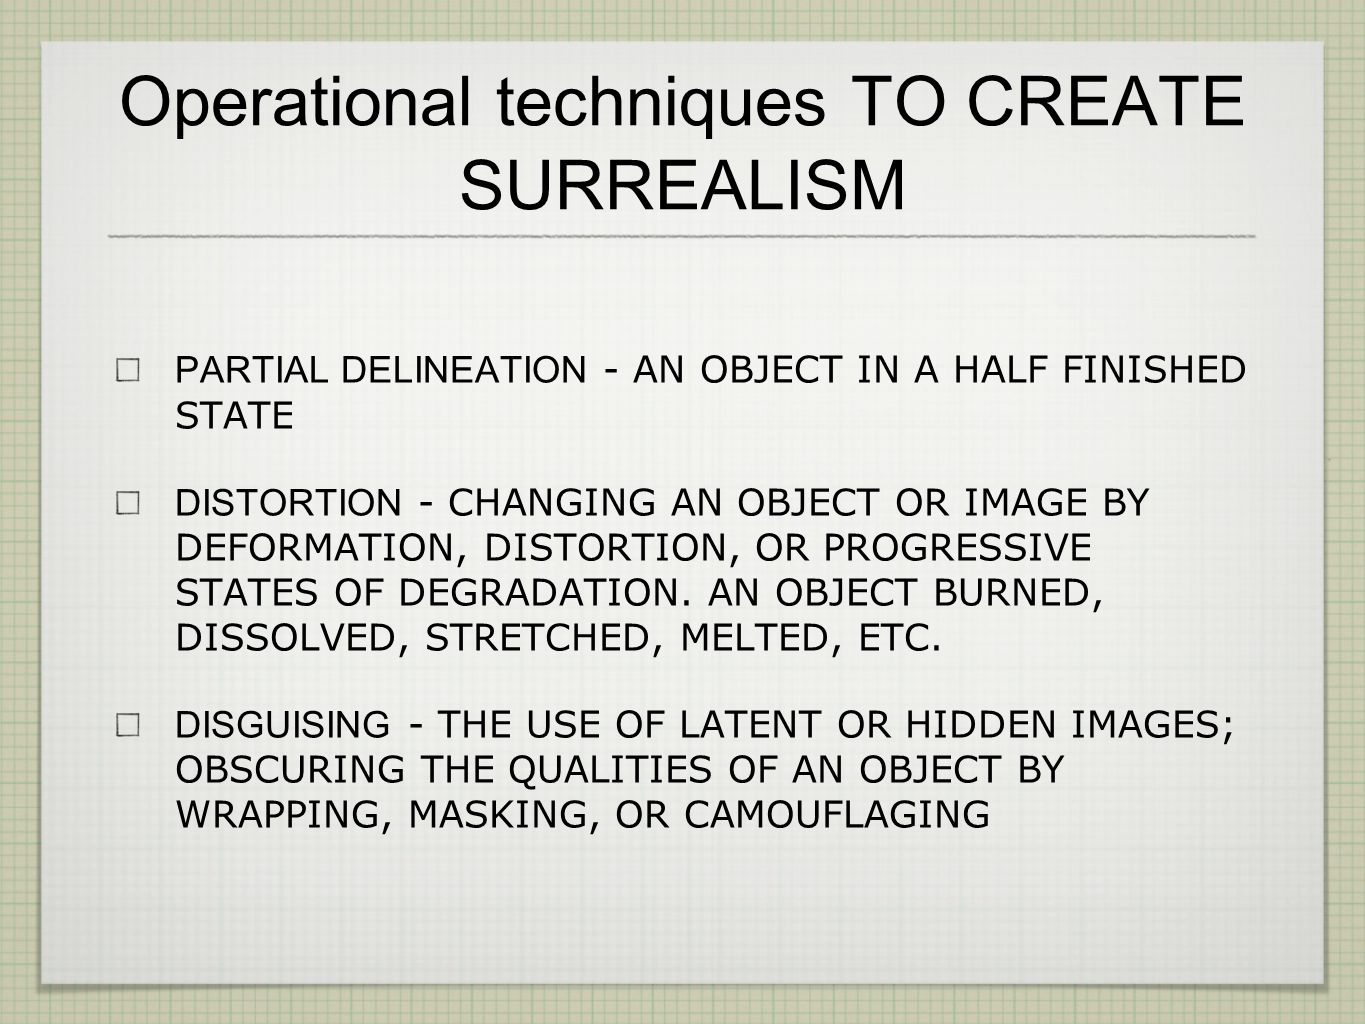 Operational techniques TO CREATE SURREALISM